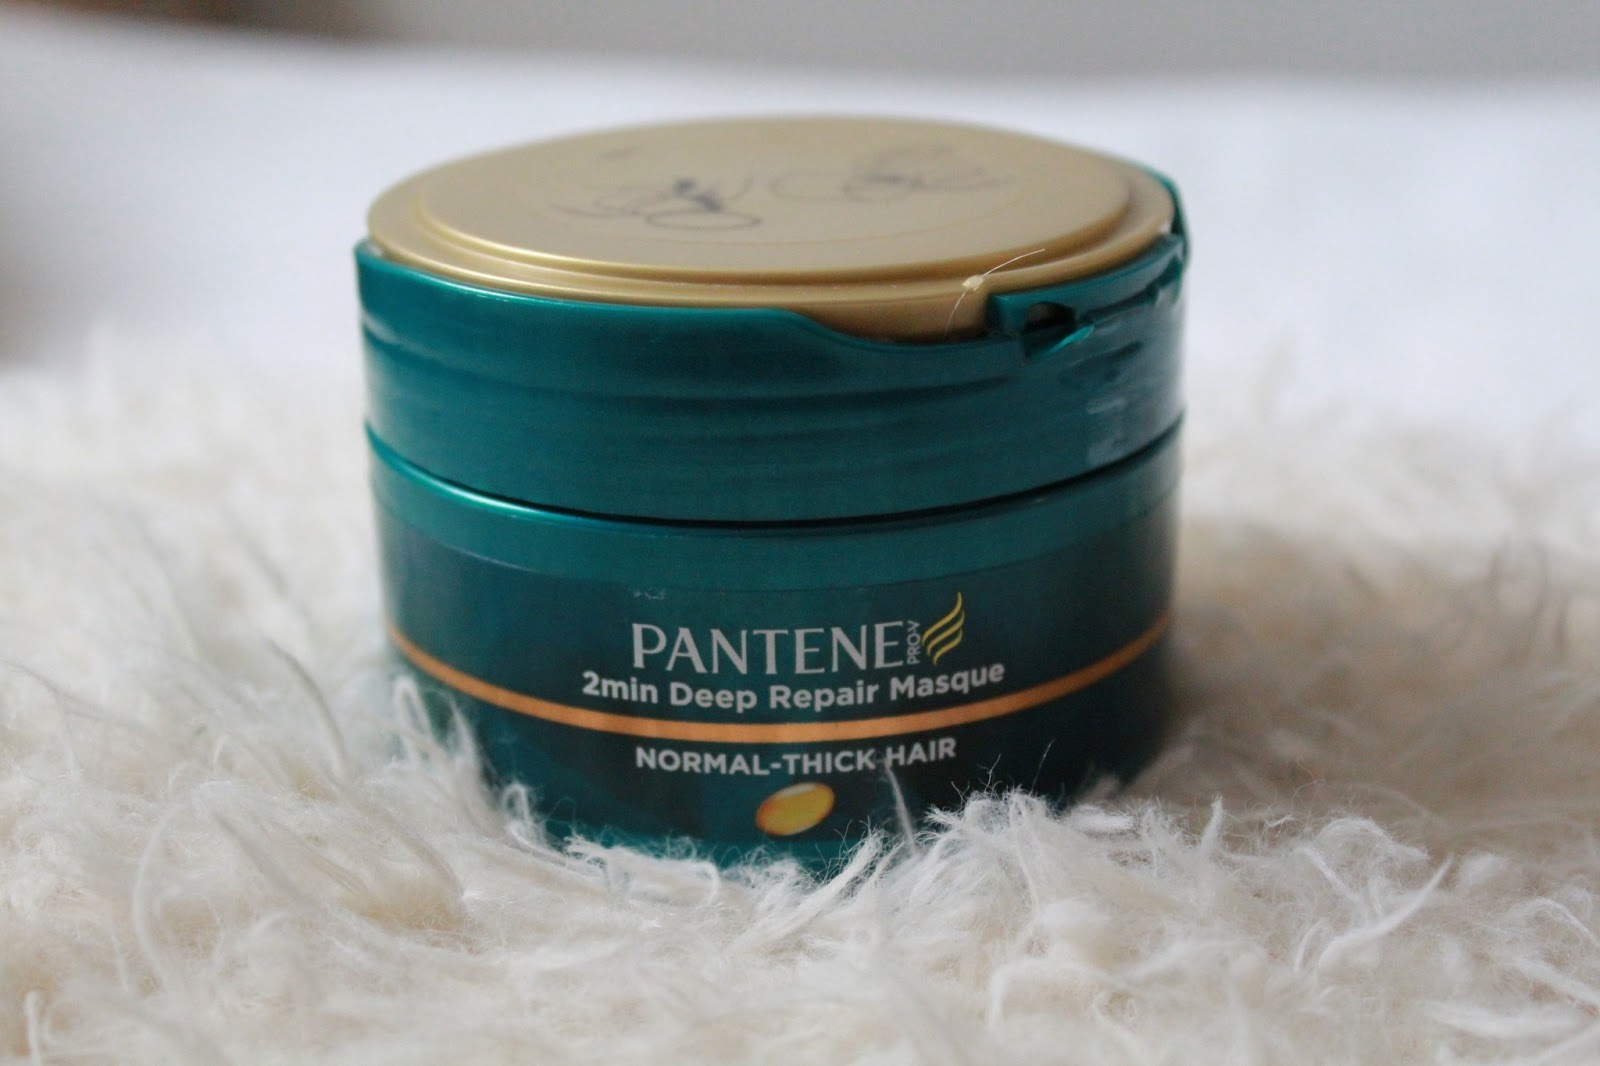 Pantene 2min Deep Repair Masque